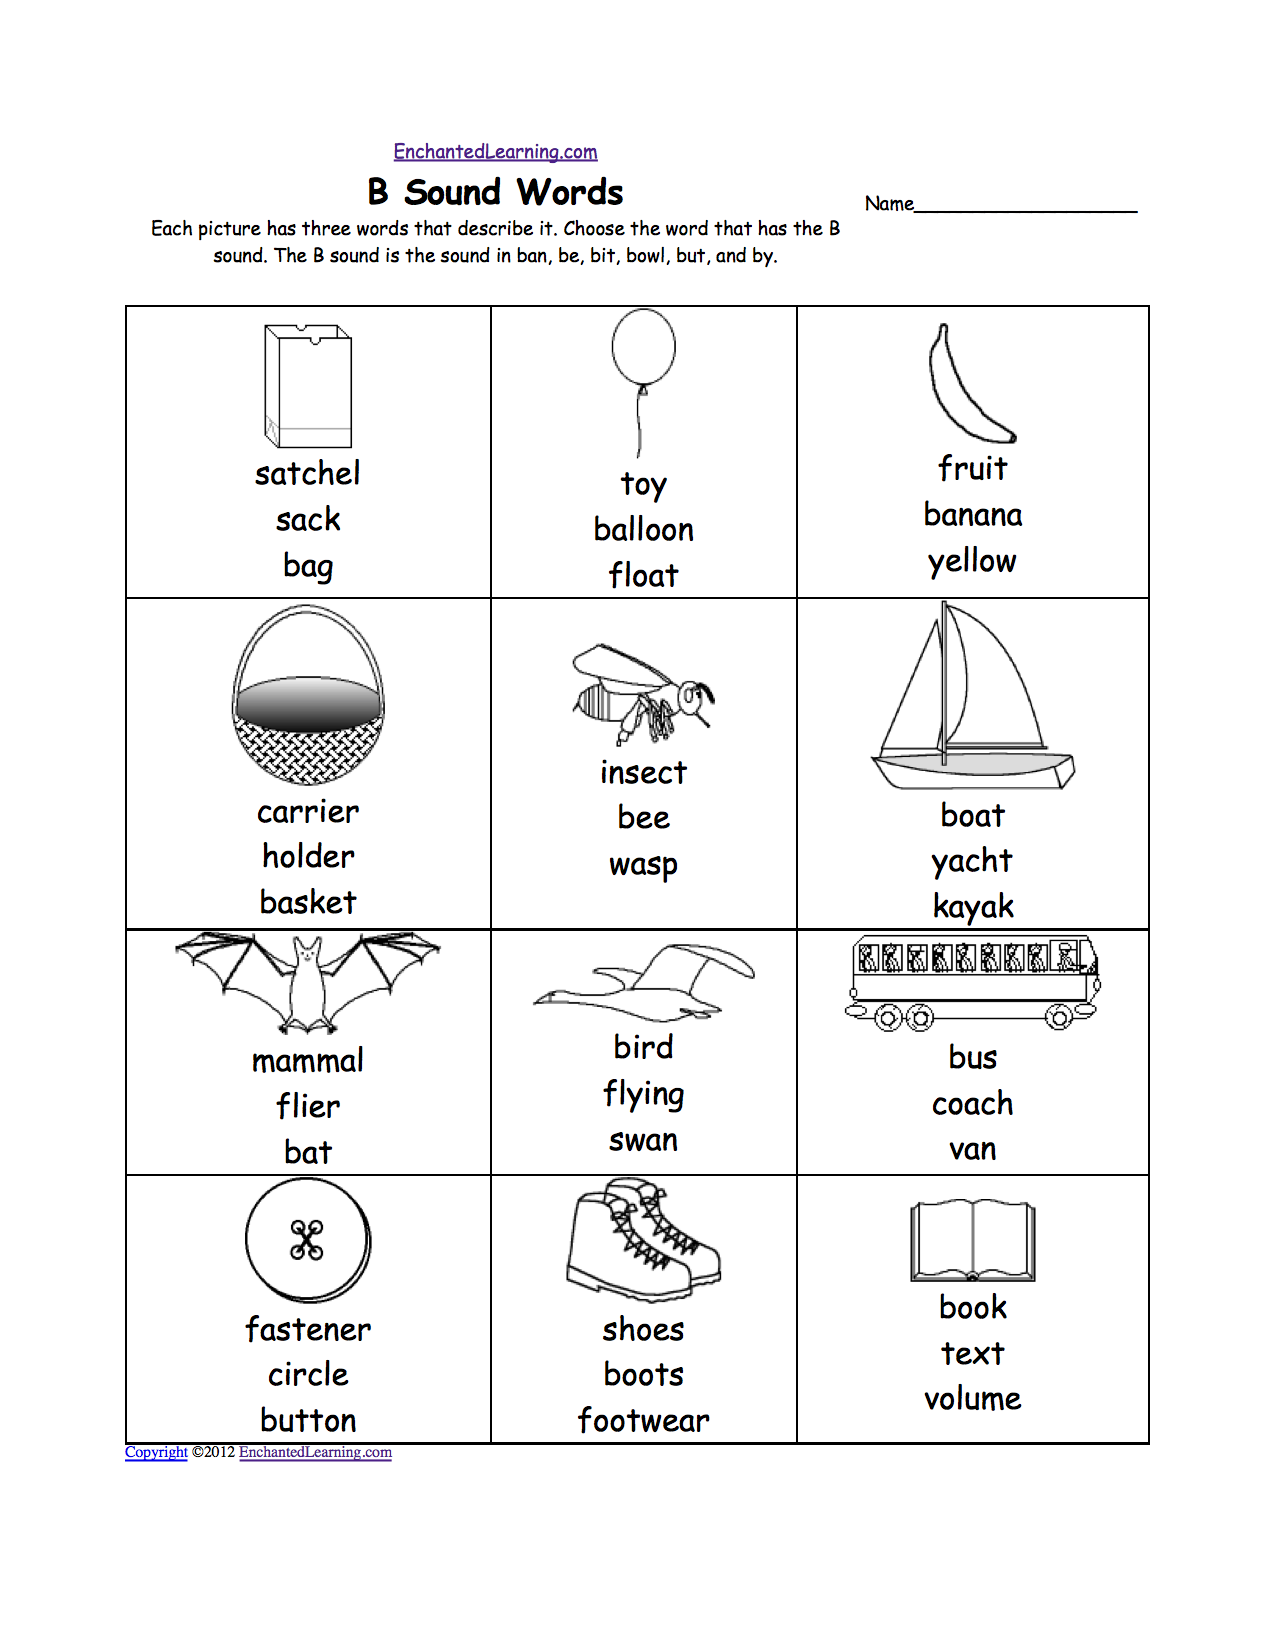 Aldiablosus  Remarkable Phonics Worksheets Multiple Choice Worksheets To Print  With Outstanding Quotbquot Sound Phonics Worksheet Multiple Choice Each Picture Has Three Words That Describe It Choose The Word That Has A Quotbquot Sound The Quotbquot Sound Is The Sound  With Amusing Lowest Terms Fractions Worksheet Also Free Adding Worksheets In Addition Tic Tac Toe Worksheets And Common And Proper Noun Worksheets Rd Grade As Well As Simple Present Worksheet Additionally Longitude And Latitude Worksheets Rd Grade From Enchantedlearningcom With Aldiablosus  Outstanding Phonics Worksheets Multiple Choice Worksheets To Print  With Amusing Quotbquot Sound Phonics Worksheet Multiple Choice Each Picture Has Three Words That Describe It Choose The Word That Has A Quotbquot Sound The Quotbquot Sound Is The Sound  And Remarkable Lowest Terms Fractions Worksheet Also Free Adding Worksheets In Addition Tic Tac Toe Worksheets From Enchantedlearningcom